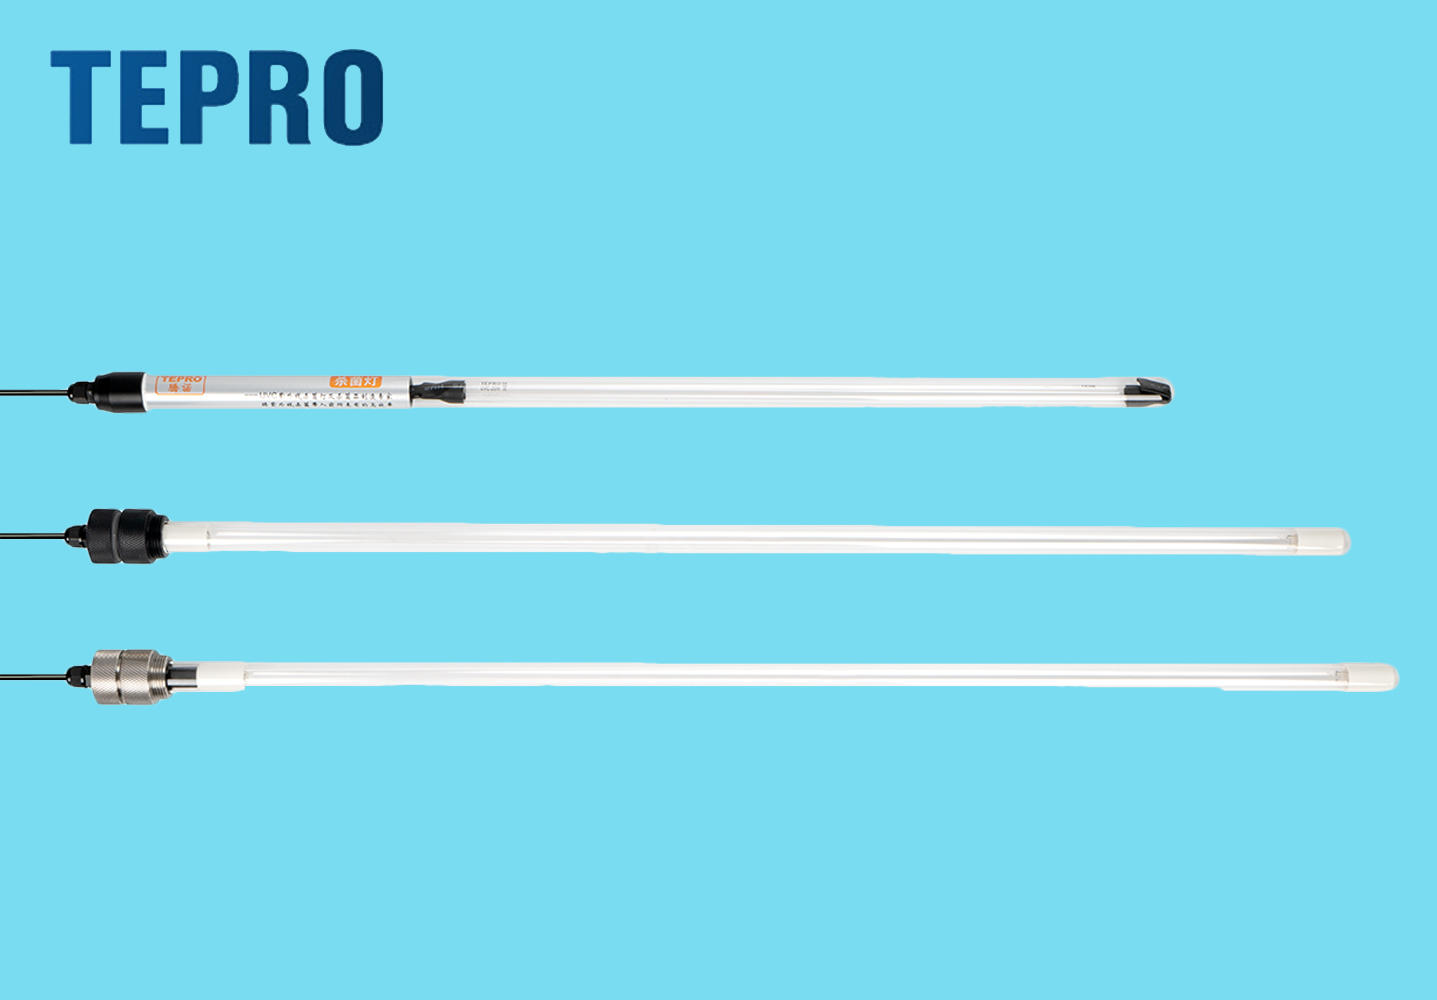 professional buy uv light supplier for pools Tepro-1